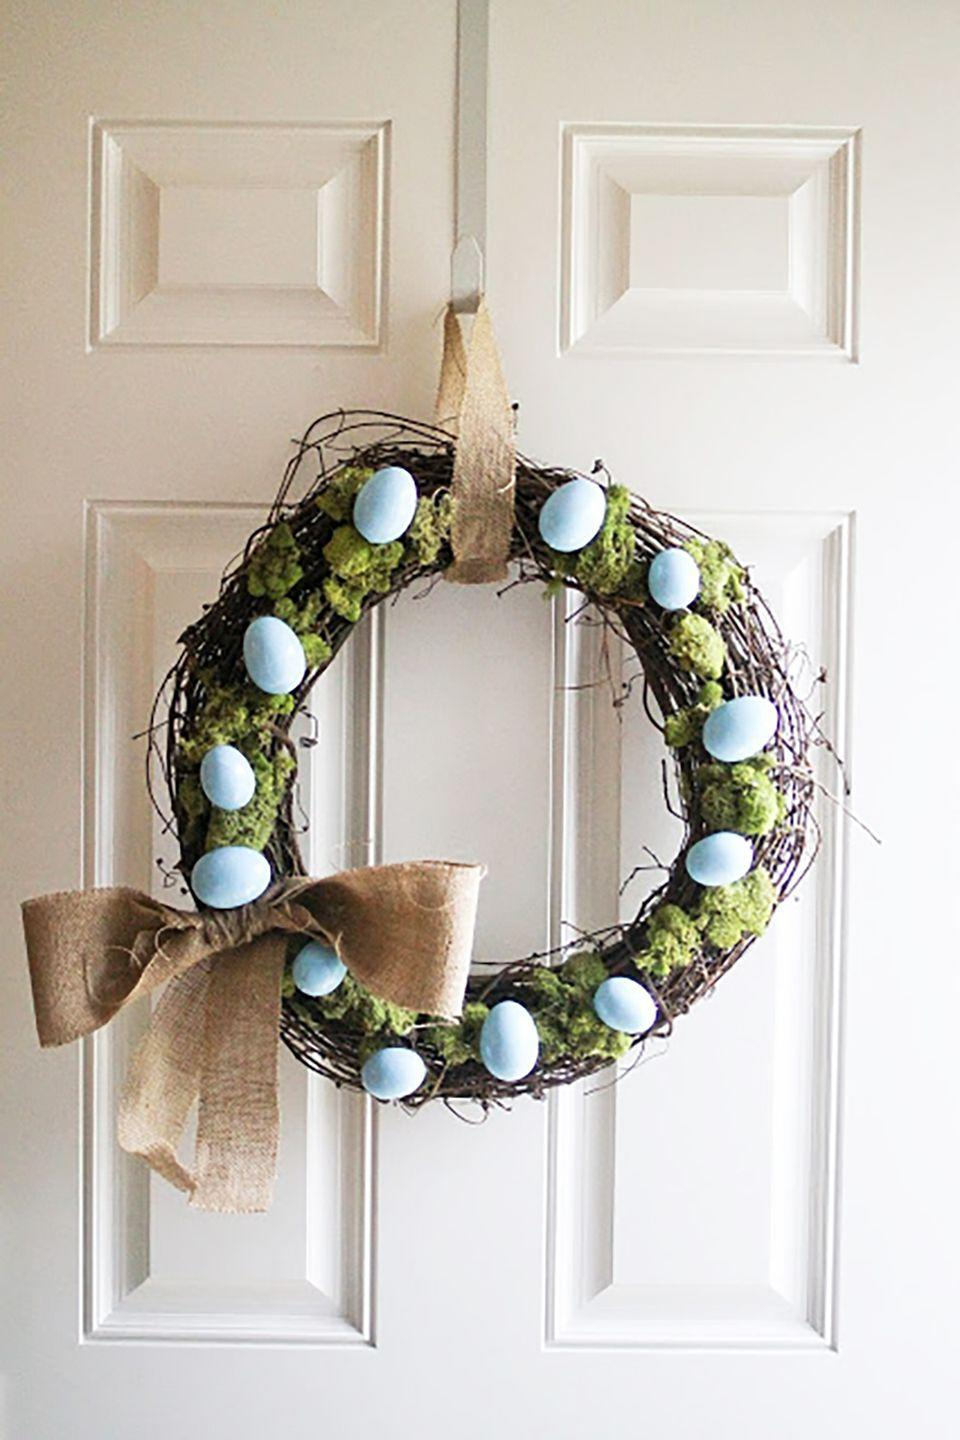 """<p>Glue moss and blue robin's eggs to a medium twig wreath and attach a burlap bow for a simple but pretty Easter look.</p><p><strong>Get the tutorial at <a href=""""http://www.iloveyoumorethancarrots.com/2013/02/diy-spring-wreath-sort-of.html"""" rel=""""nofollow noopener"""" target=""""_blank"""" data-ylk=""""slk:I Love You More Than Carrots"""" class=""""link rapid-noclick-resp"""">I Love You More Than Carrots</a>.</strong></p><p><strong><strong><a class=""""link rapid-noclick-resp"""" href=""""https://www.amazon.com/Bulk-Buy-Darice-Grapevine-Wreath/dp/B0033M0HG4?tag=syn-yahoo-20&ascsubtag=%5Bartid%7C10050.g.4088%5Bsrc%7Cyahoo-us"""" rel=""""nofollow noopener"""" target=""""_blank"""" data-ylk=""""slk:SHOP GRAPEVINE WREATHS"""">SHOP GRAPEVINE WREATHS</a></strong></strong></p>"""